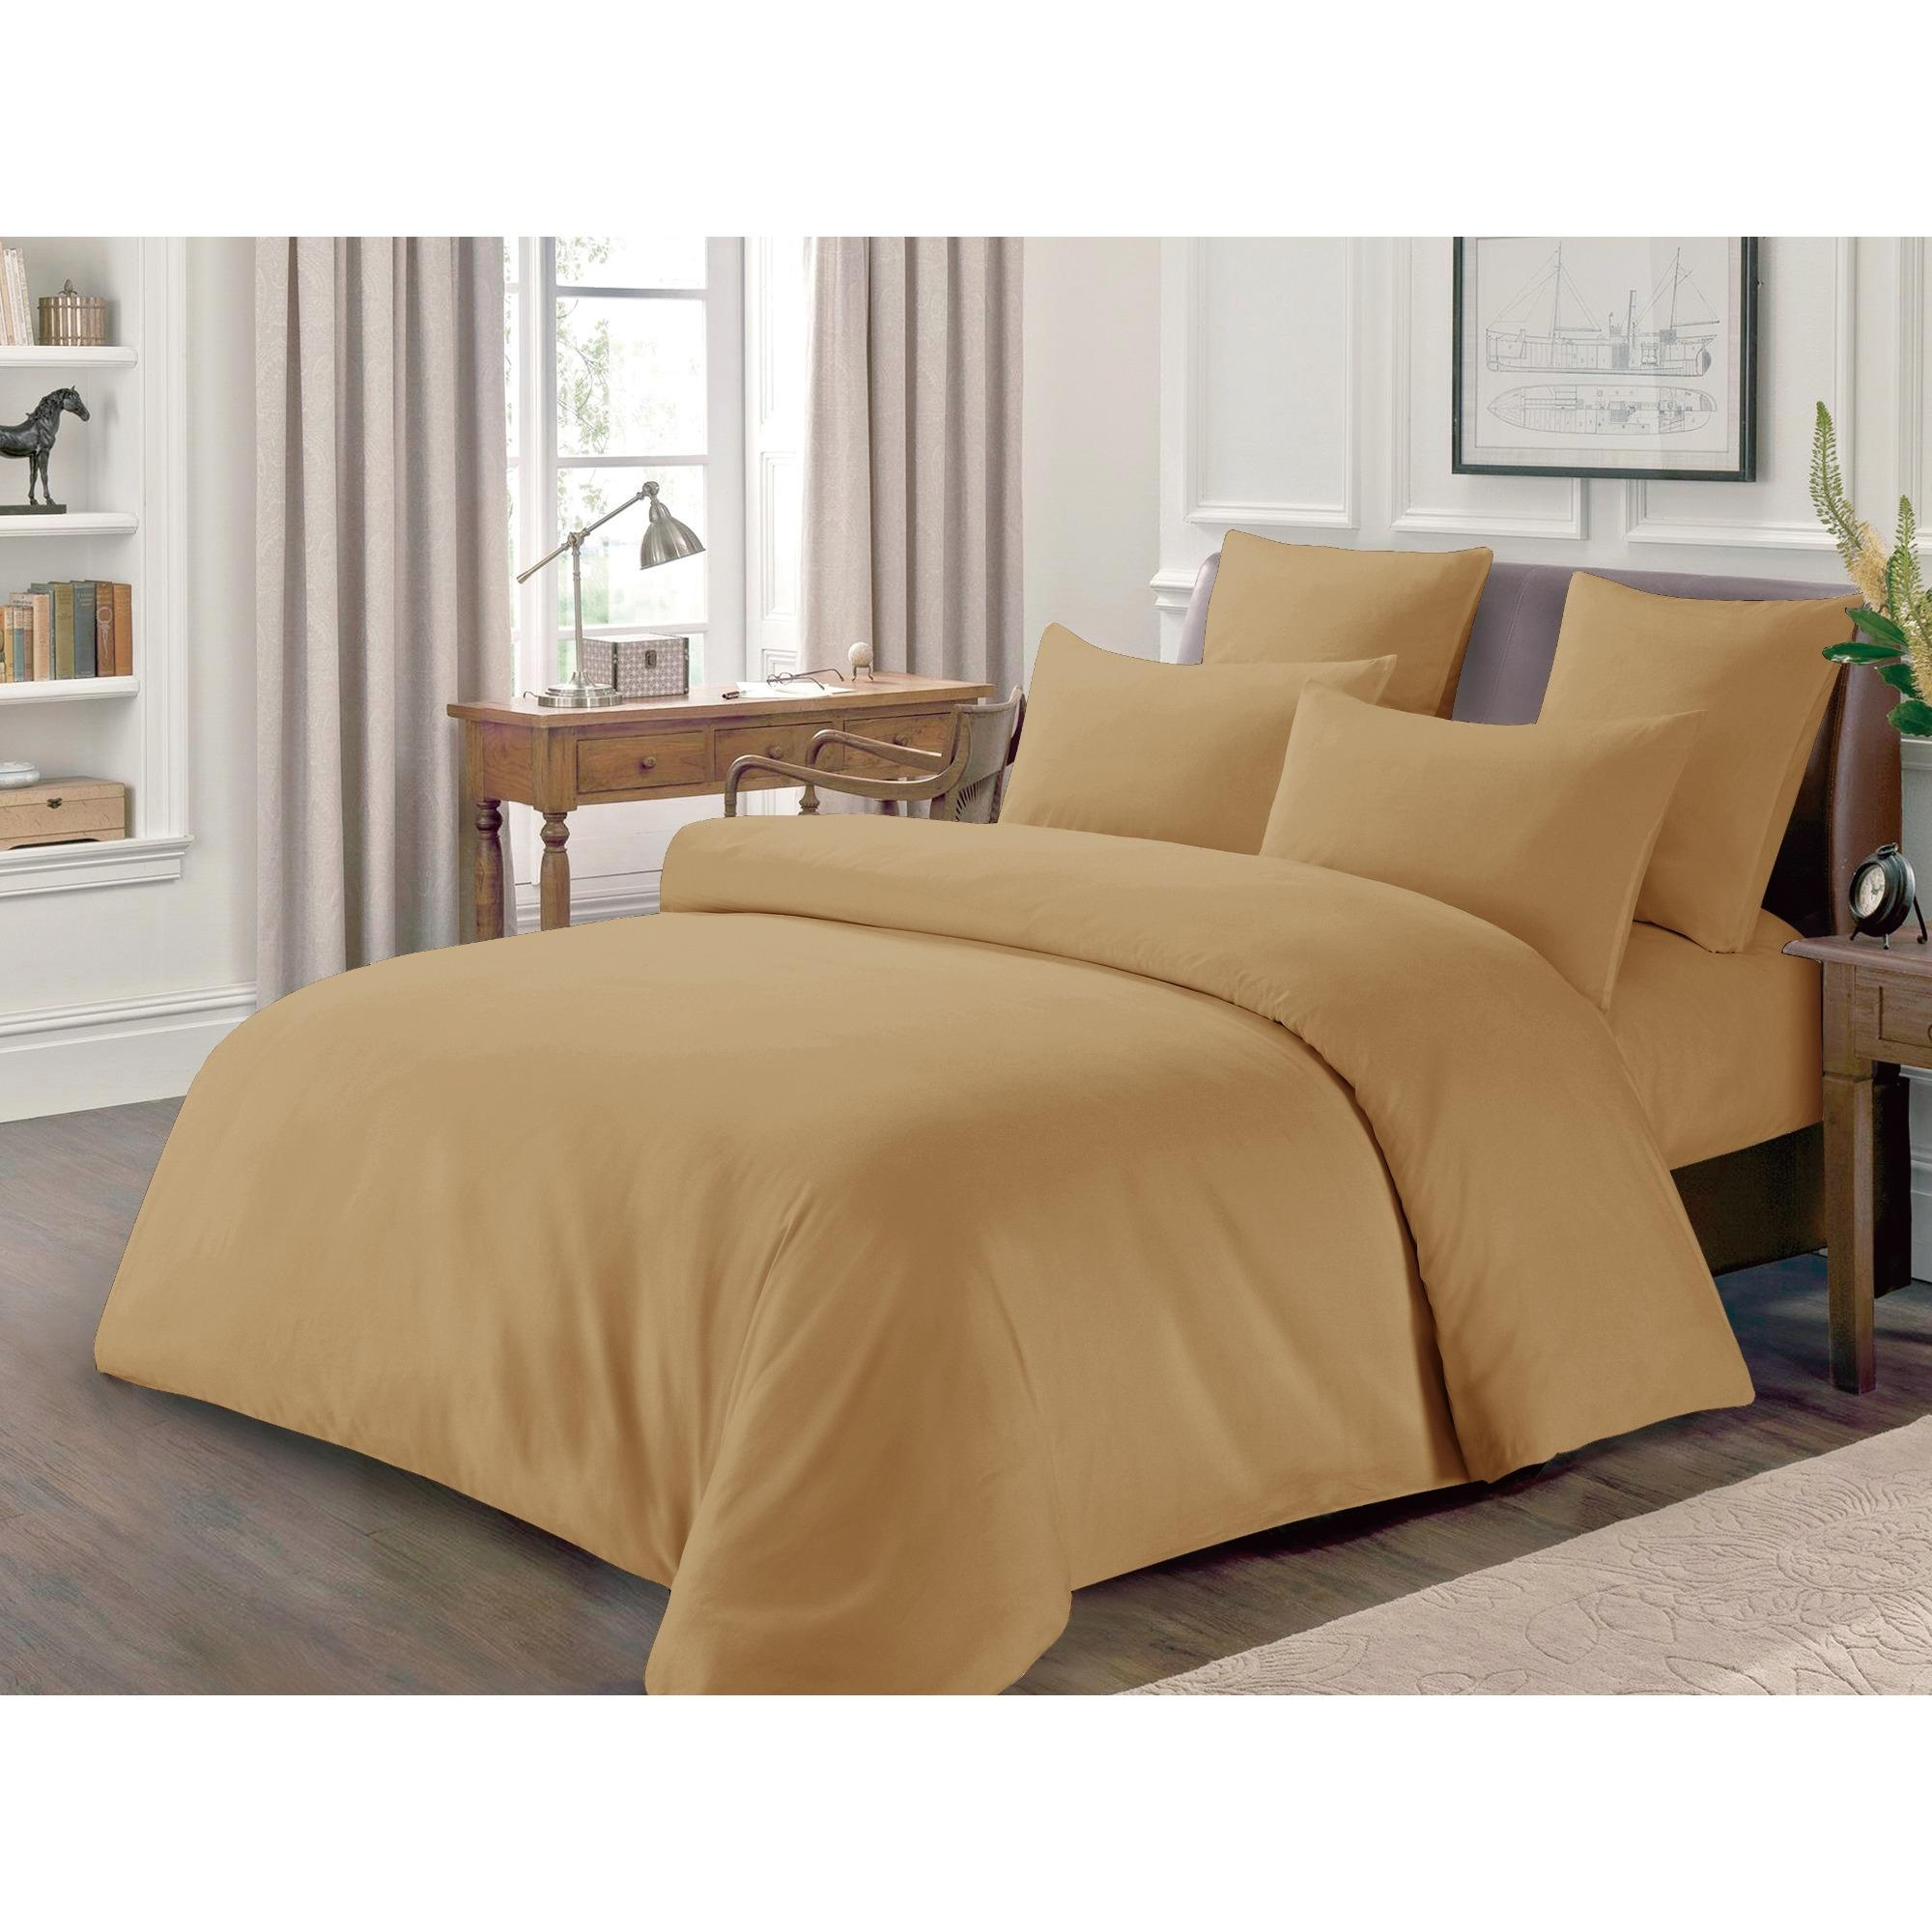 sale modern aetherair sheets colonnade hotel on sers sets king quilt bedroom macys full co bedding comforter asli size thread collection